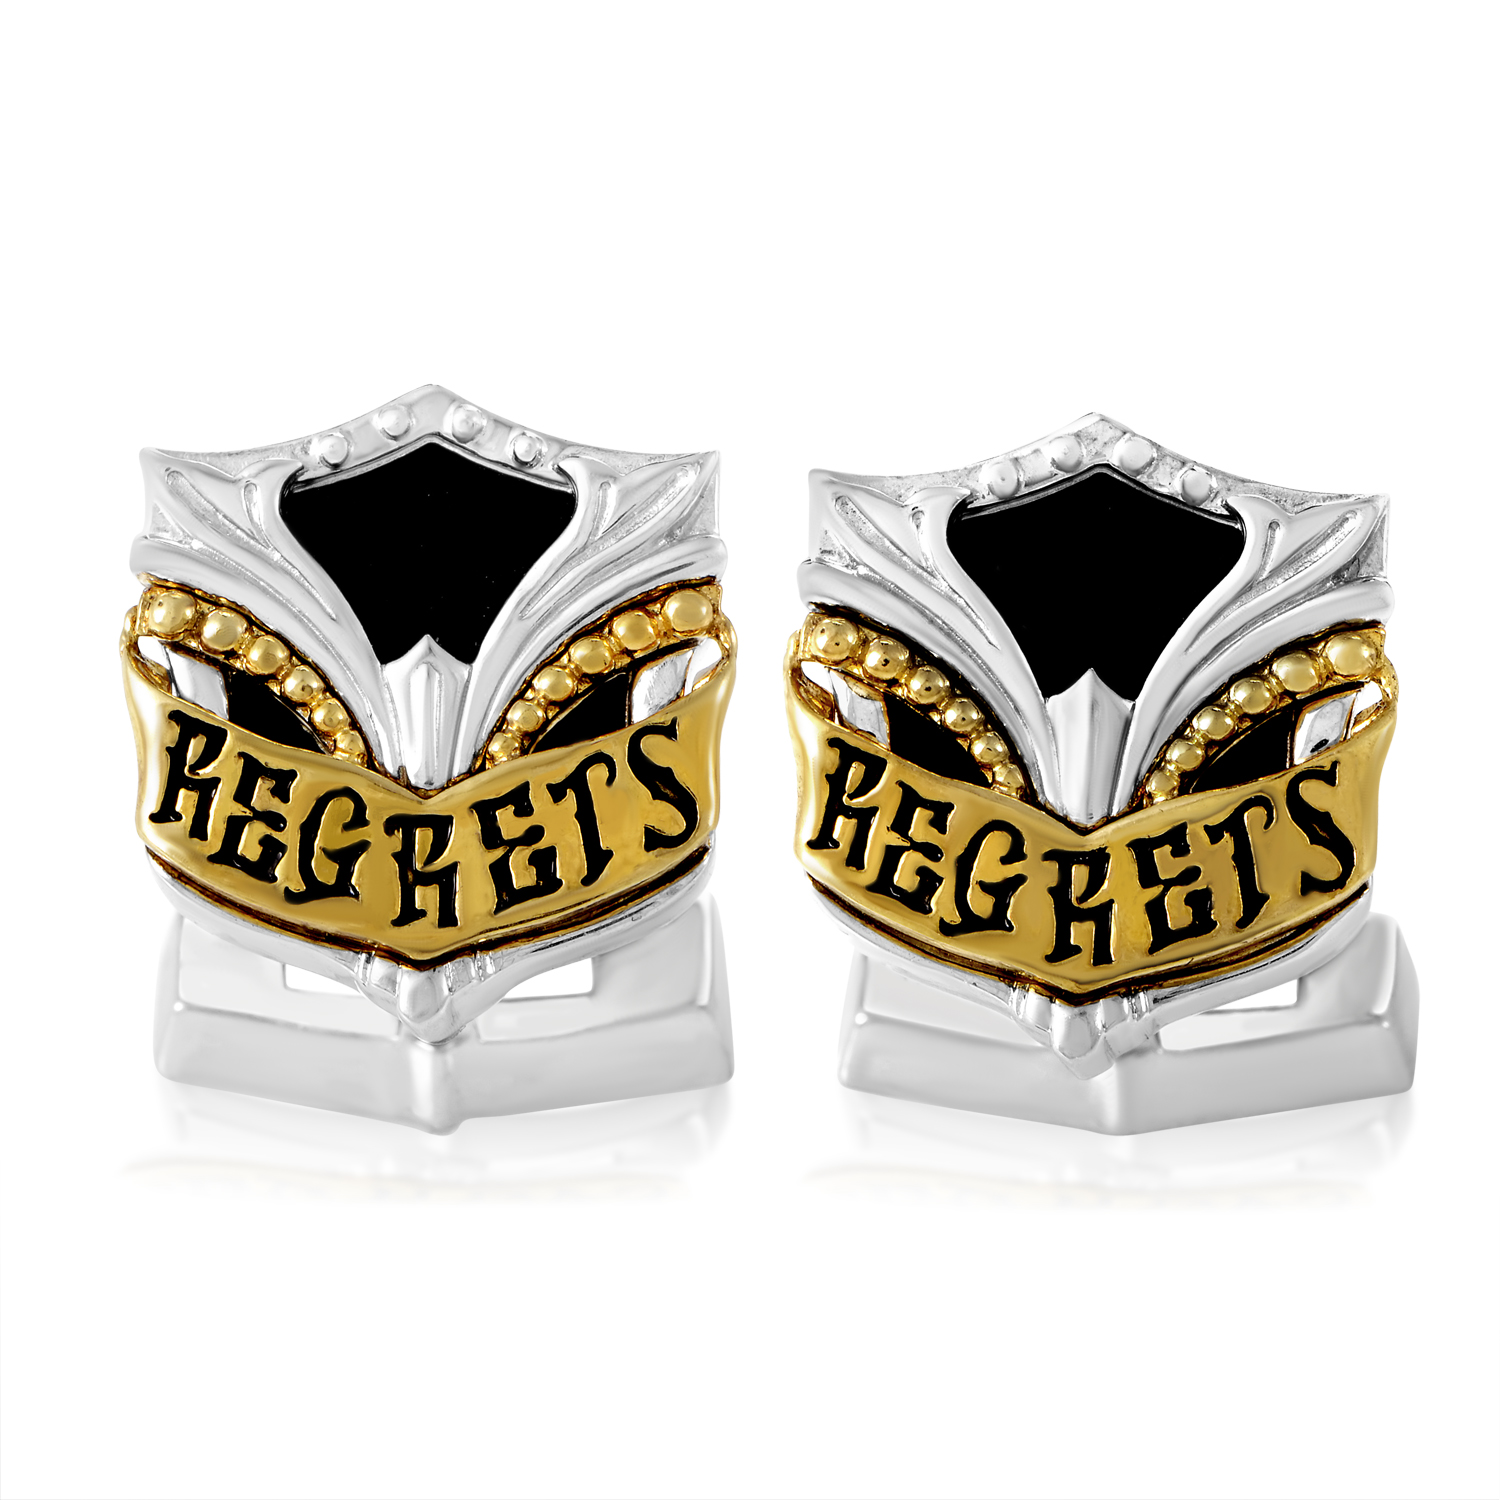 No Regrets Sterling Silver Cufflinks 3013083